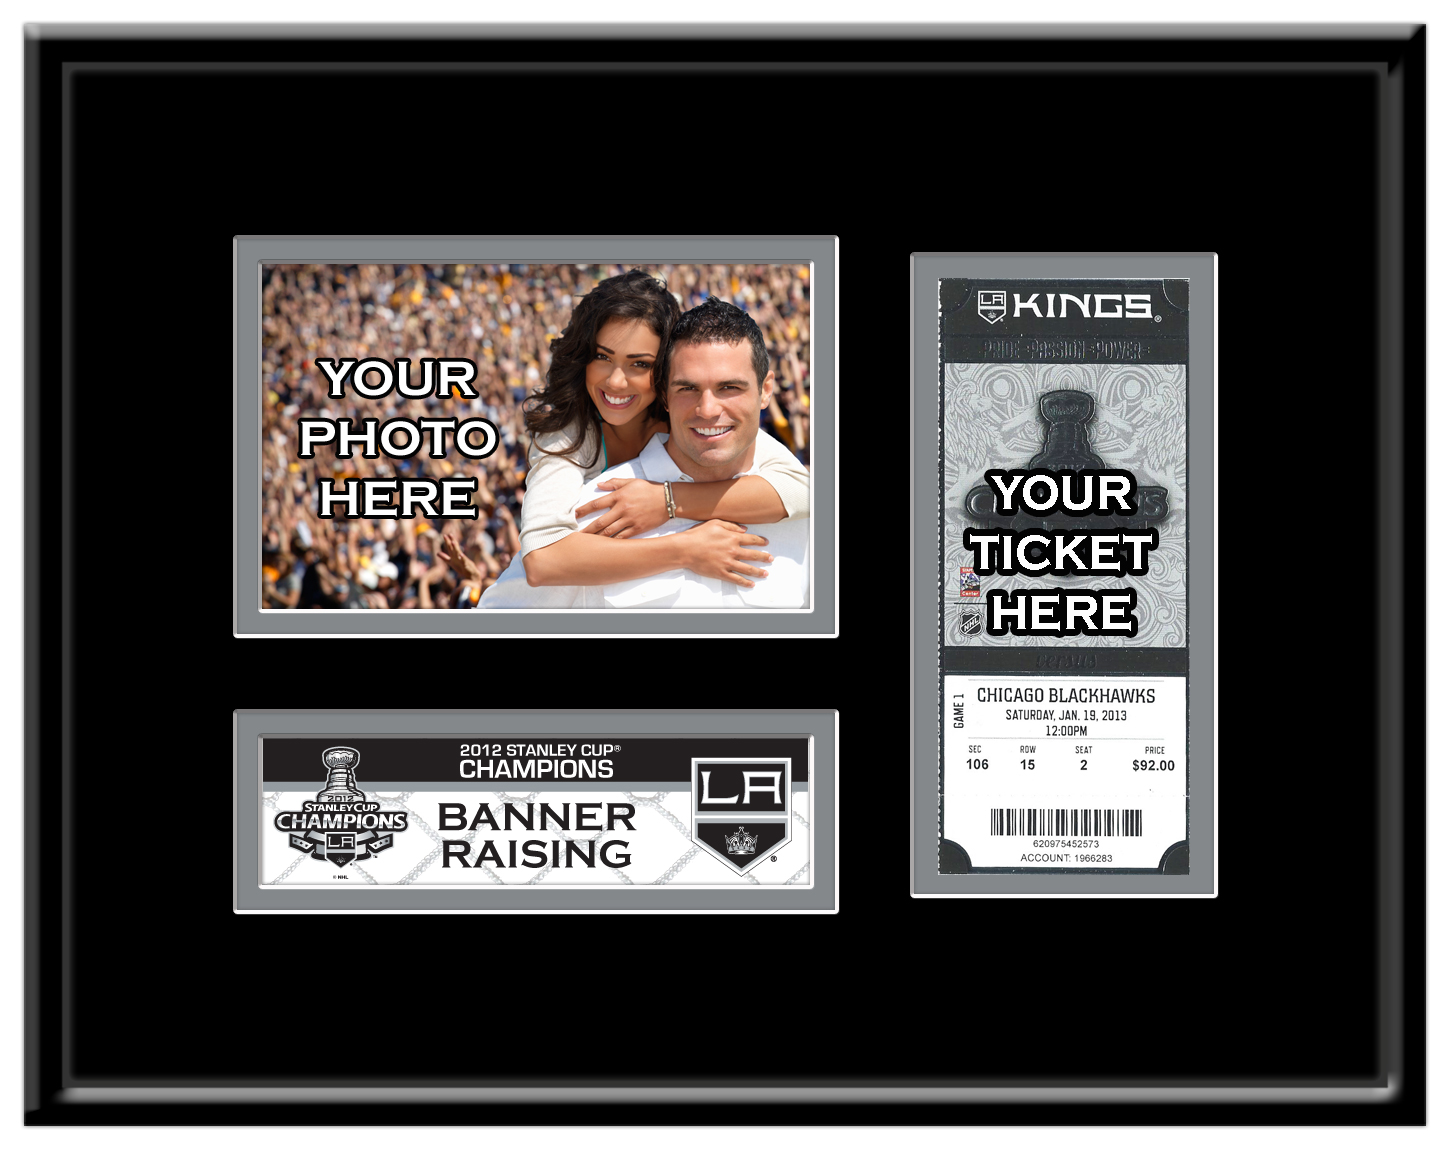 Nhl stanley cup ticket frames jeuxipadfo Image collections